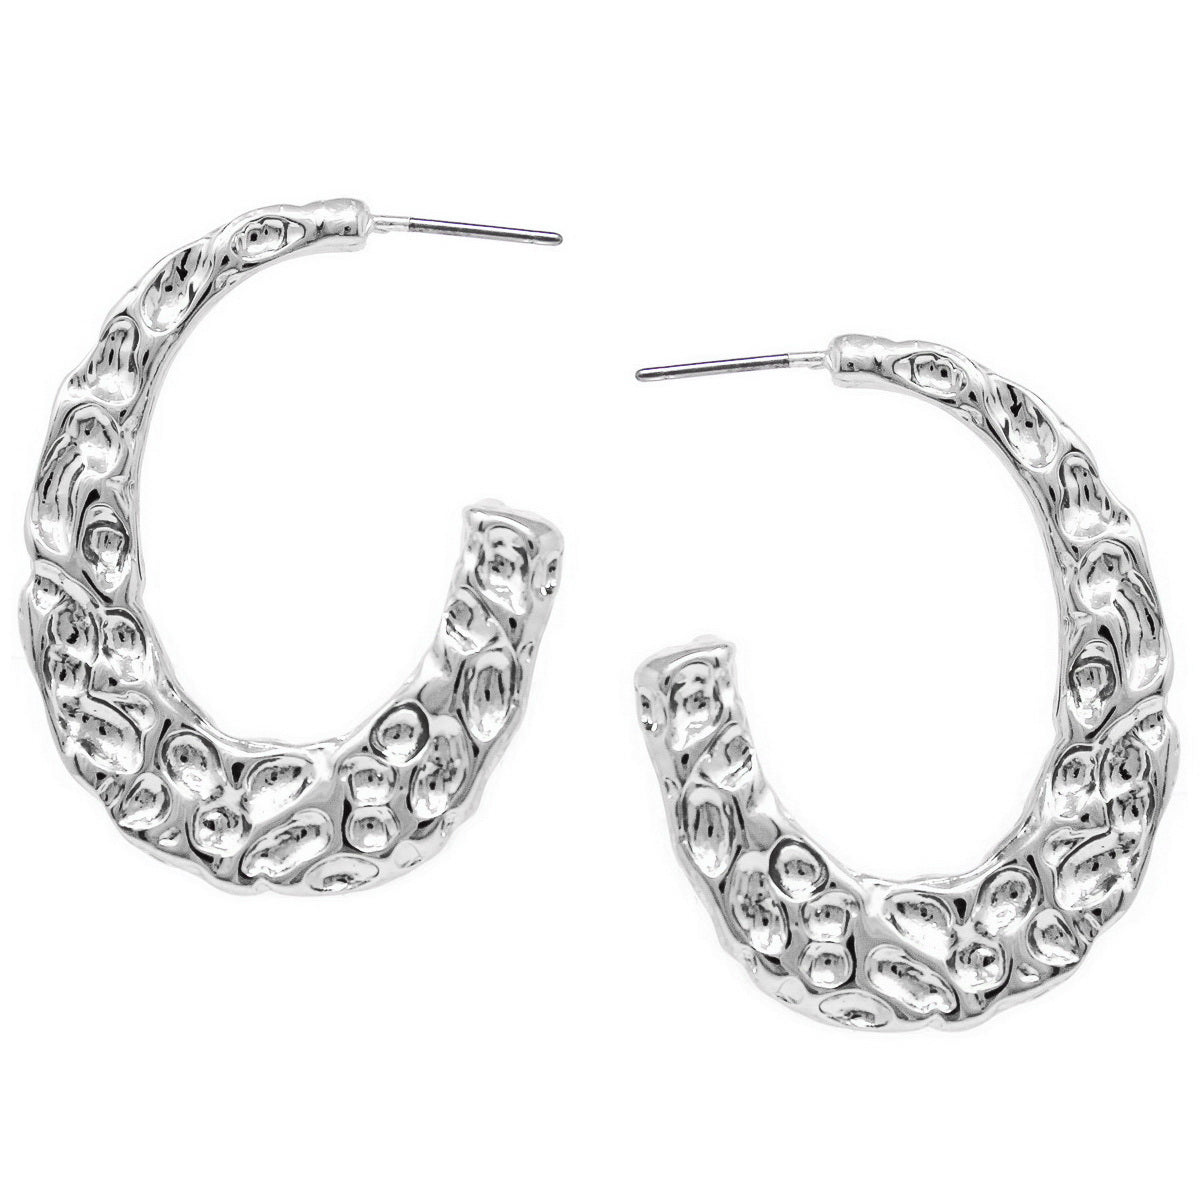 Textured Metal Oval Hoop Earrings